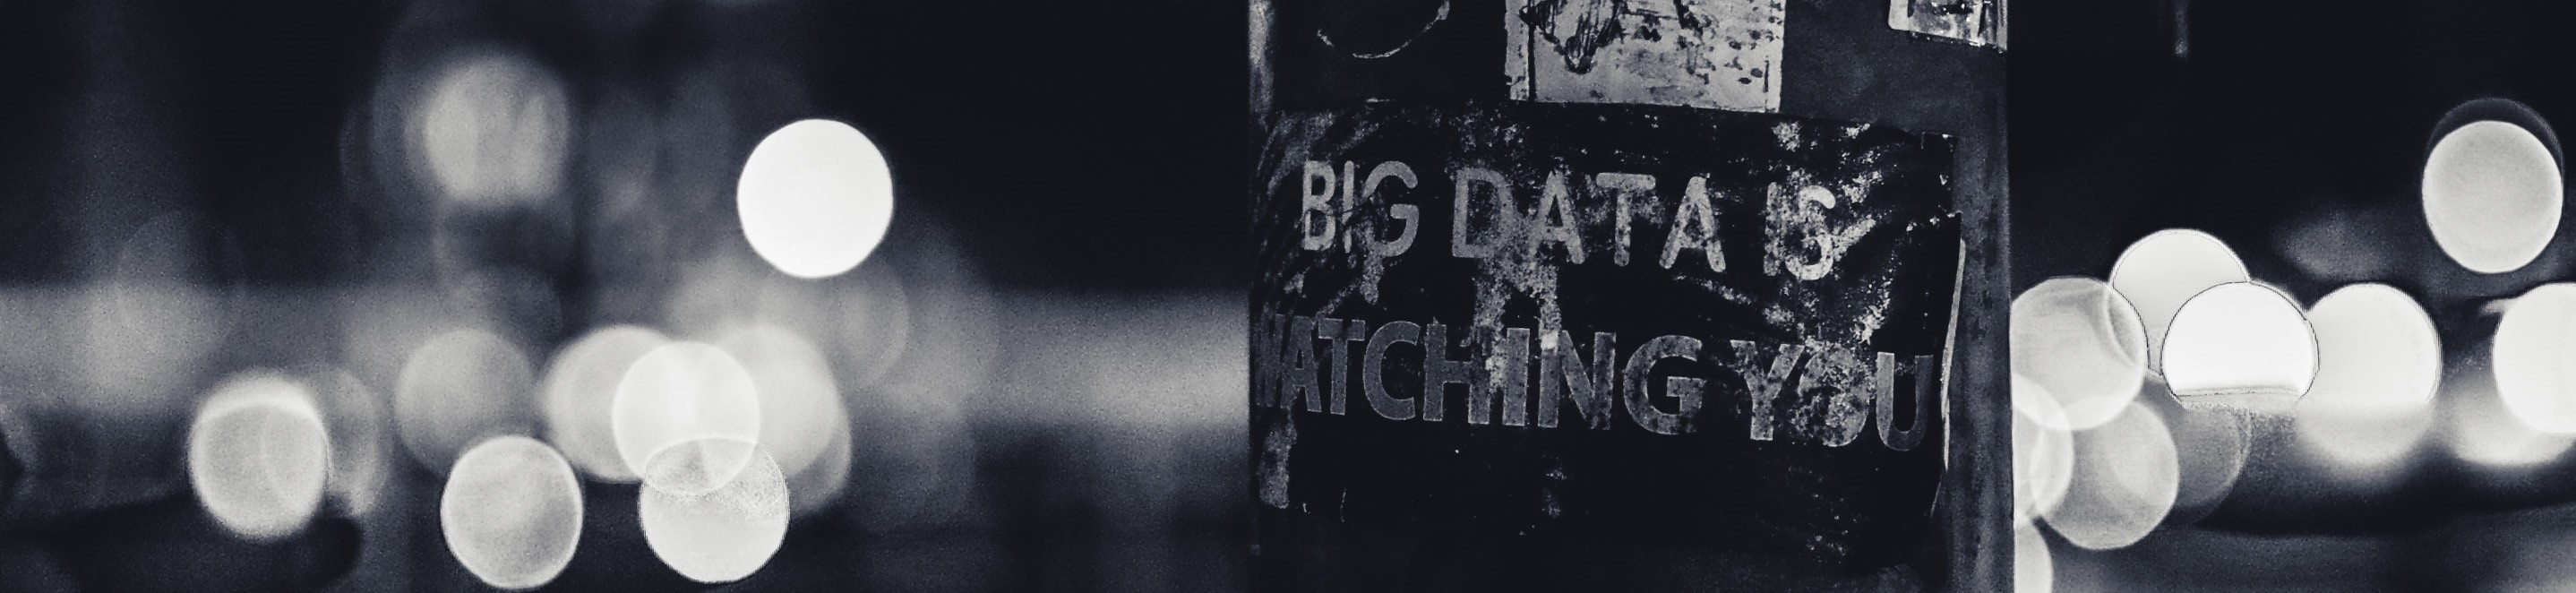 black and white photo with blurred background and 'big data is watching you' text.